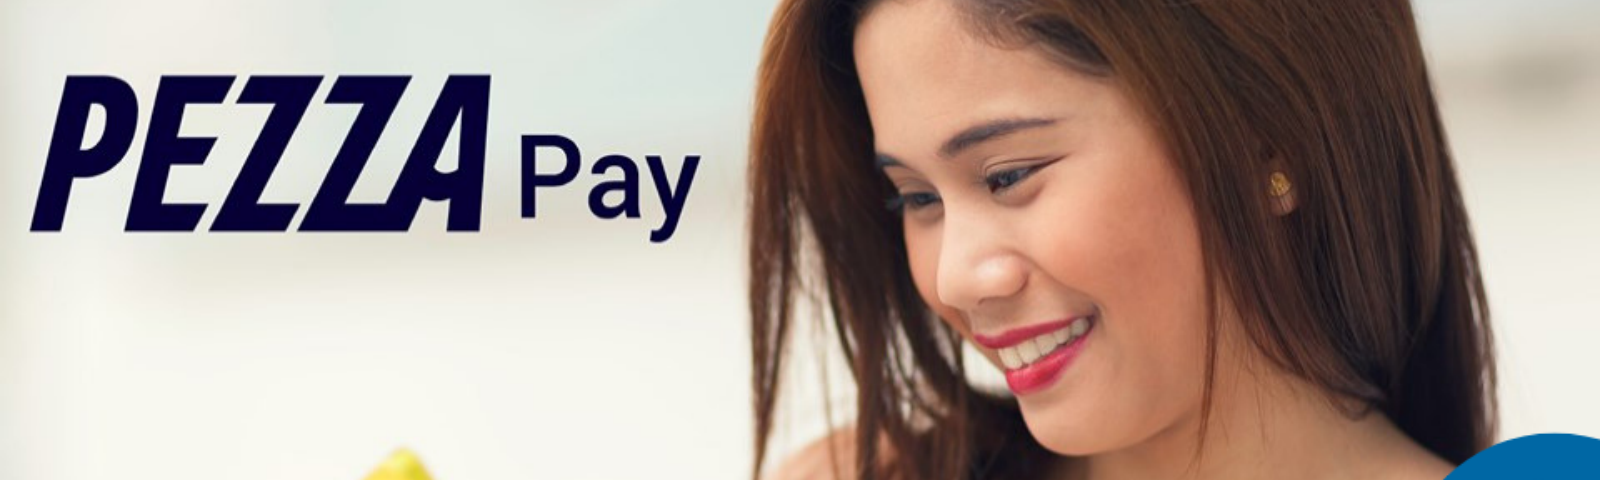 PEZZAPay: A Reliable, Fast and Cost-saving Cross-border Payments Platform!